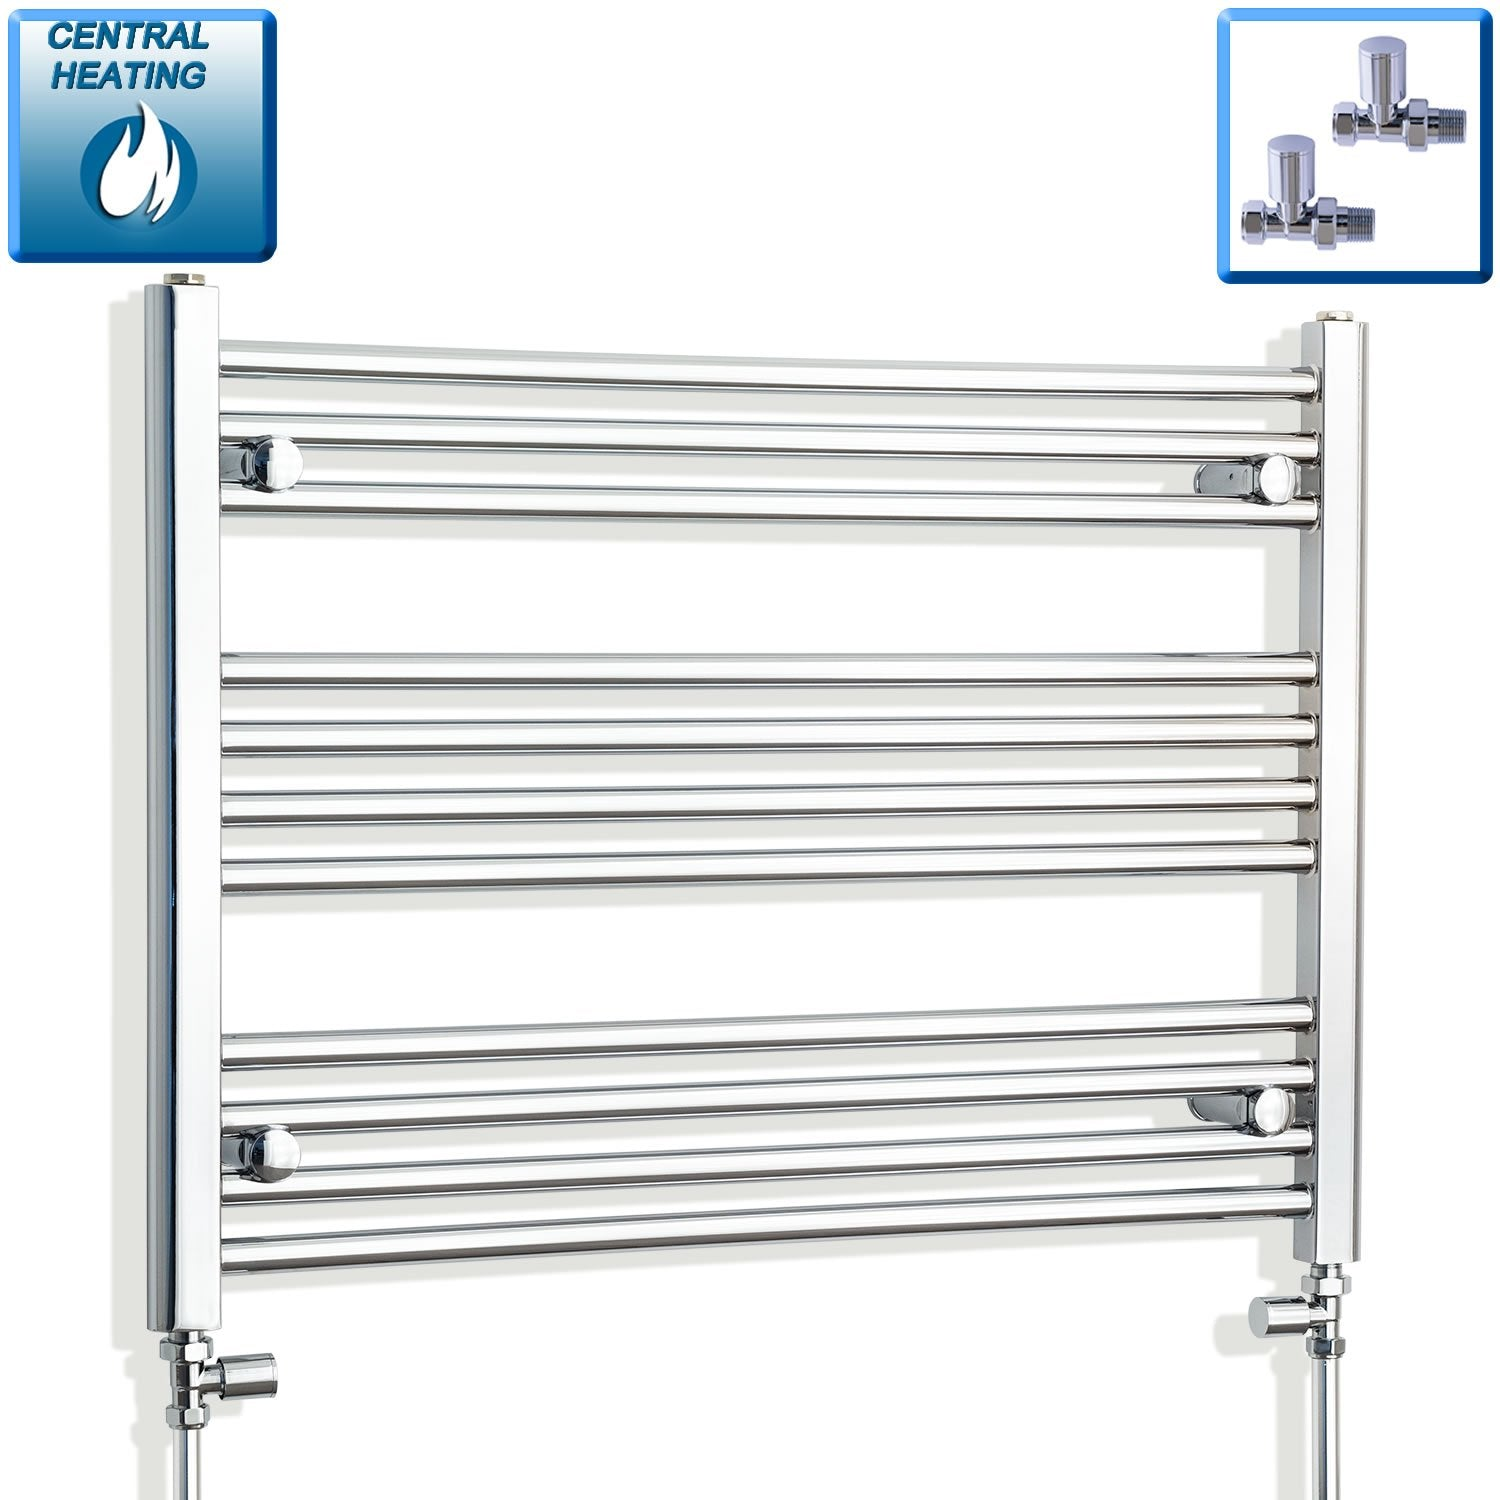 800mm Wide 600mm High Flat Chrome Heated Towel Rail Radiator HTR,With Straight Valve